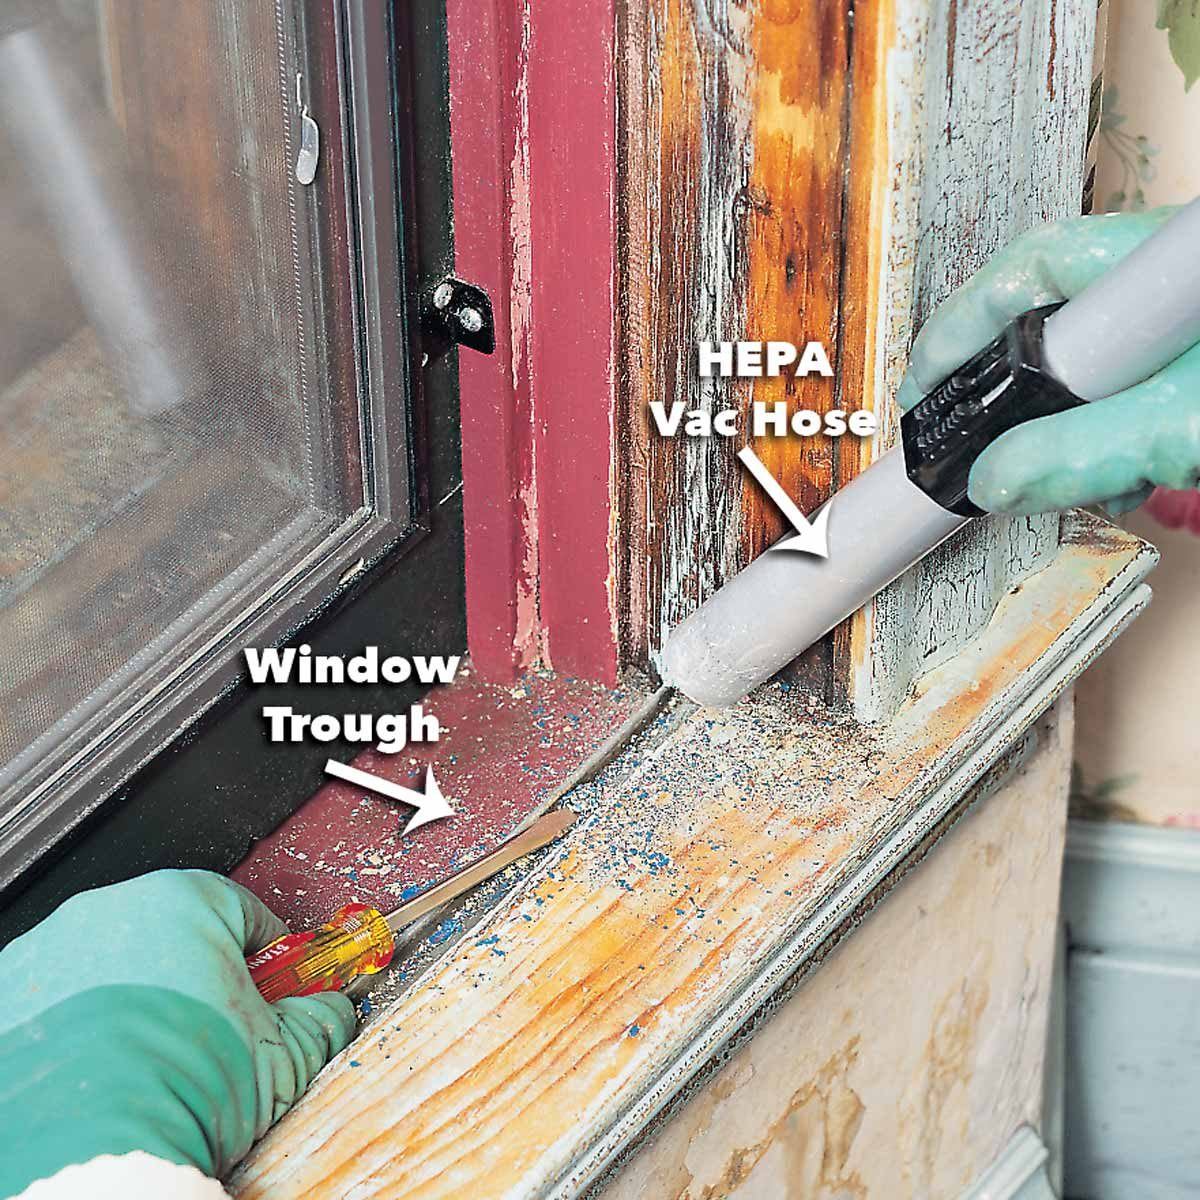 How To Remove Lead Paint Safely The Family Handyman